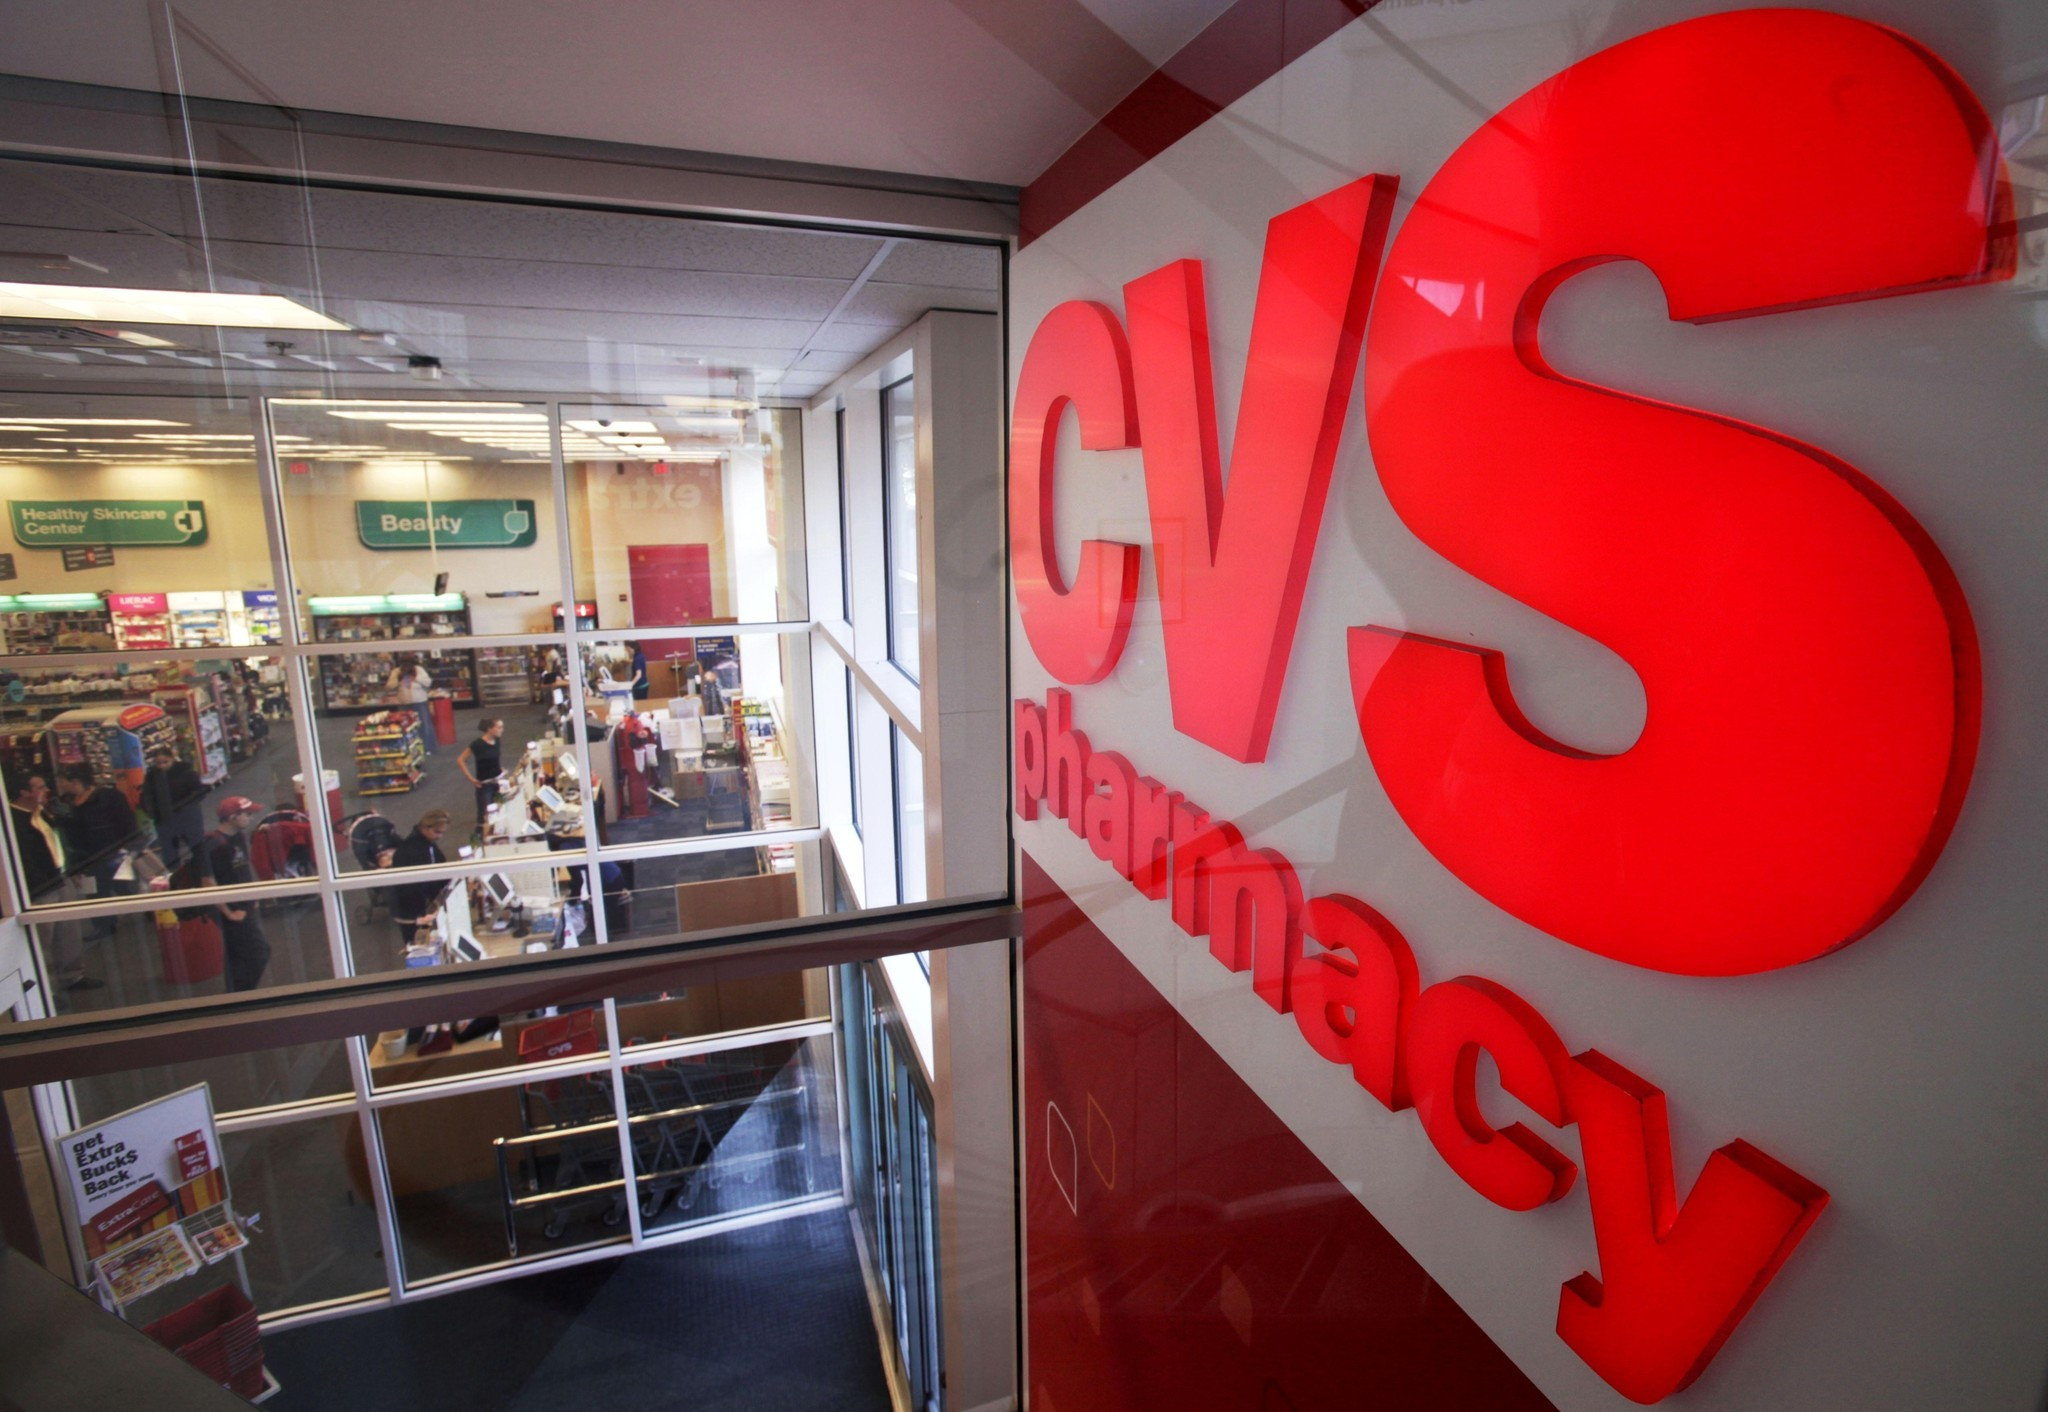 anthem  cvs team up for prescription drug service after troubled express scripts deal